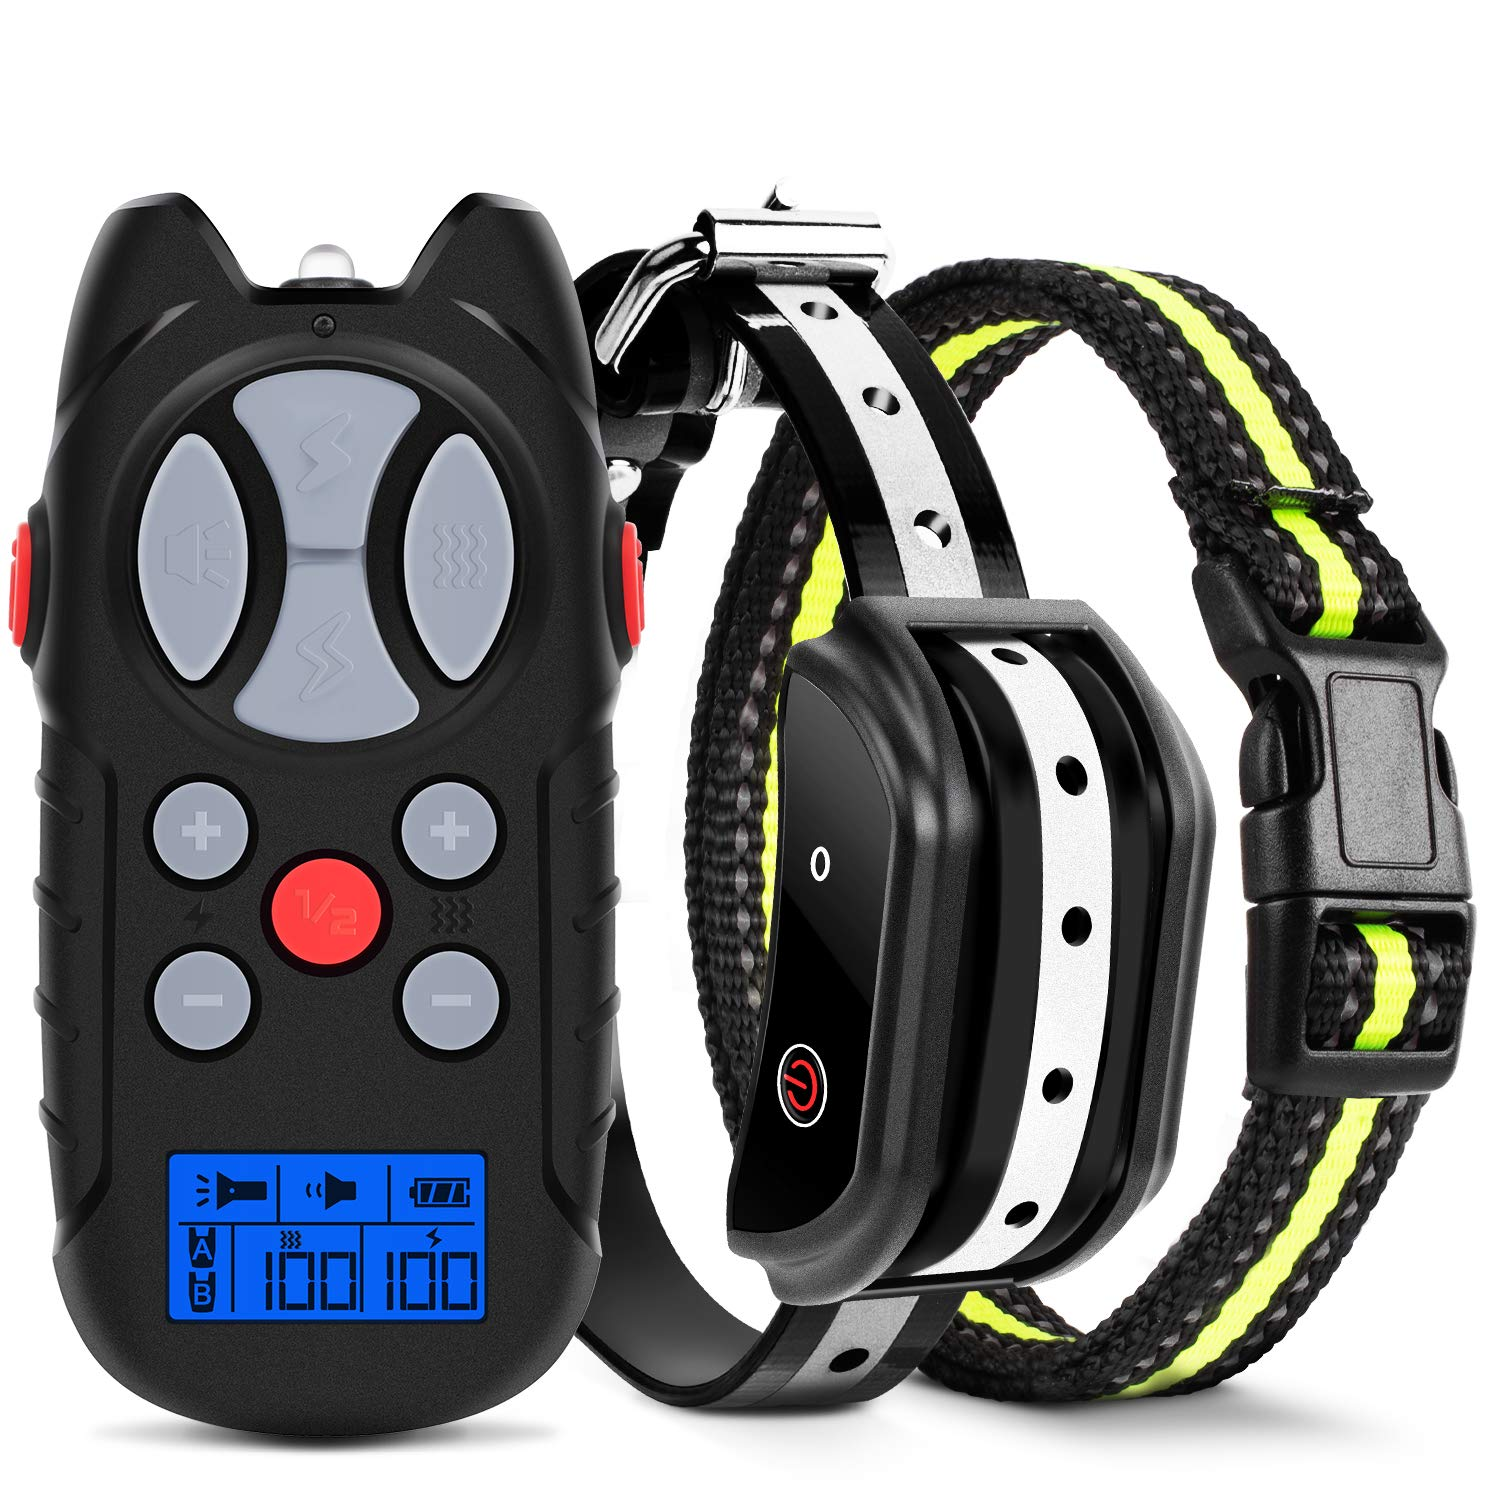 Shock Collar for Dogs, 2019 Newest Flittor Dog training Collar, Rechargeable Dog Shock Collar with Remote, 3 Modes Beep Vibration and Shock 100 Waterproof Bark Collar for Small, Medium, Large Dogs